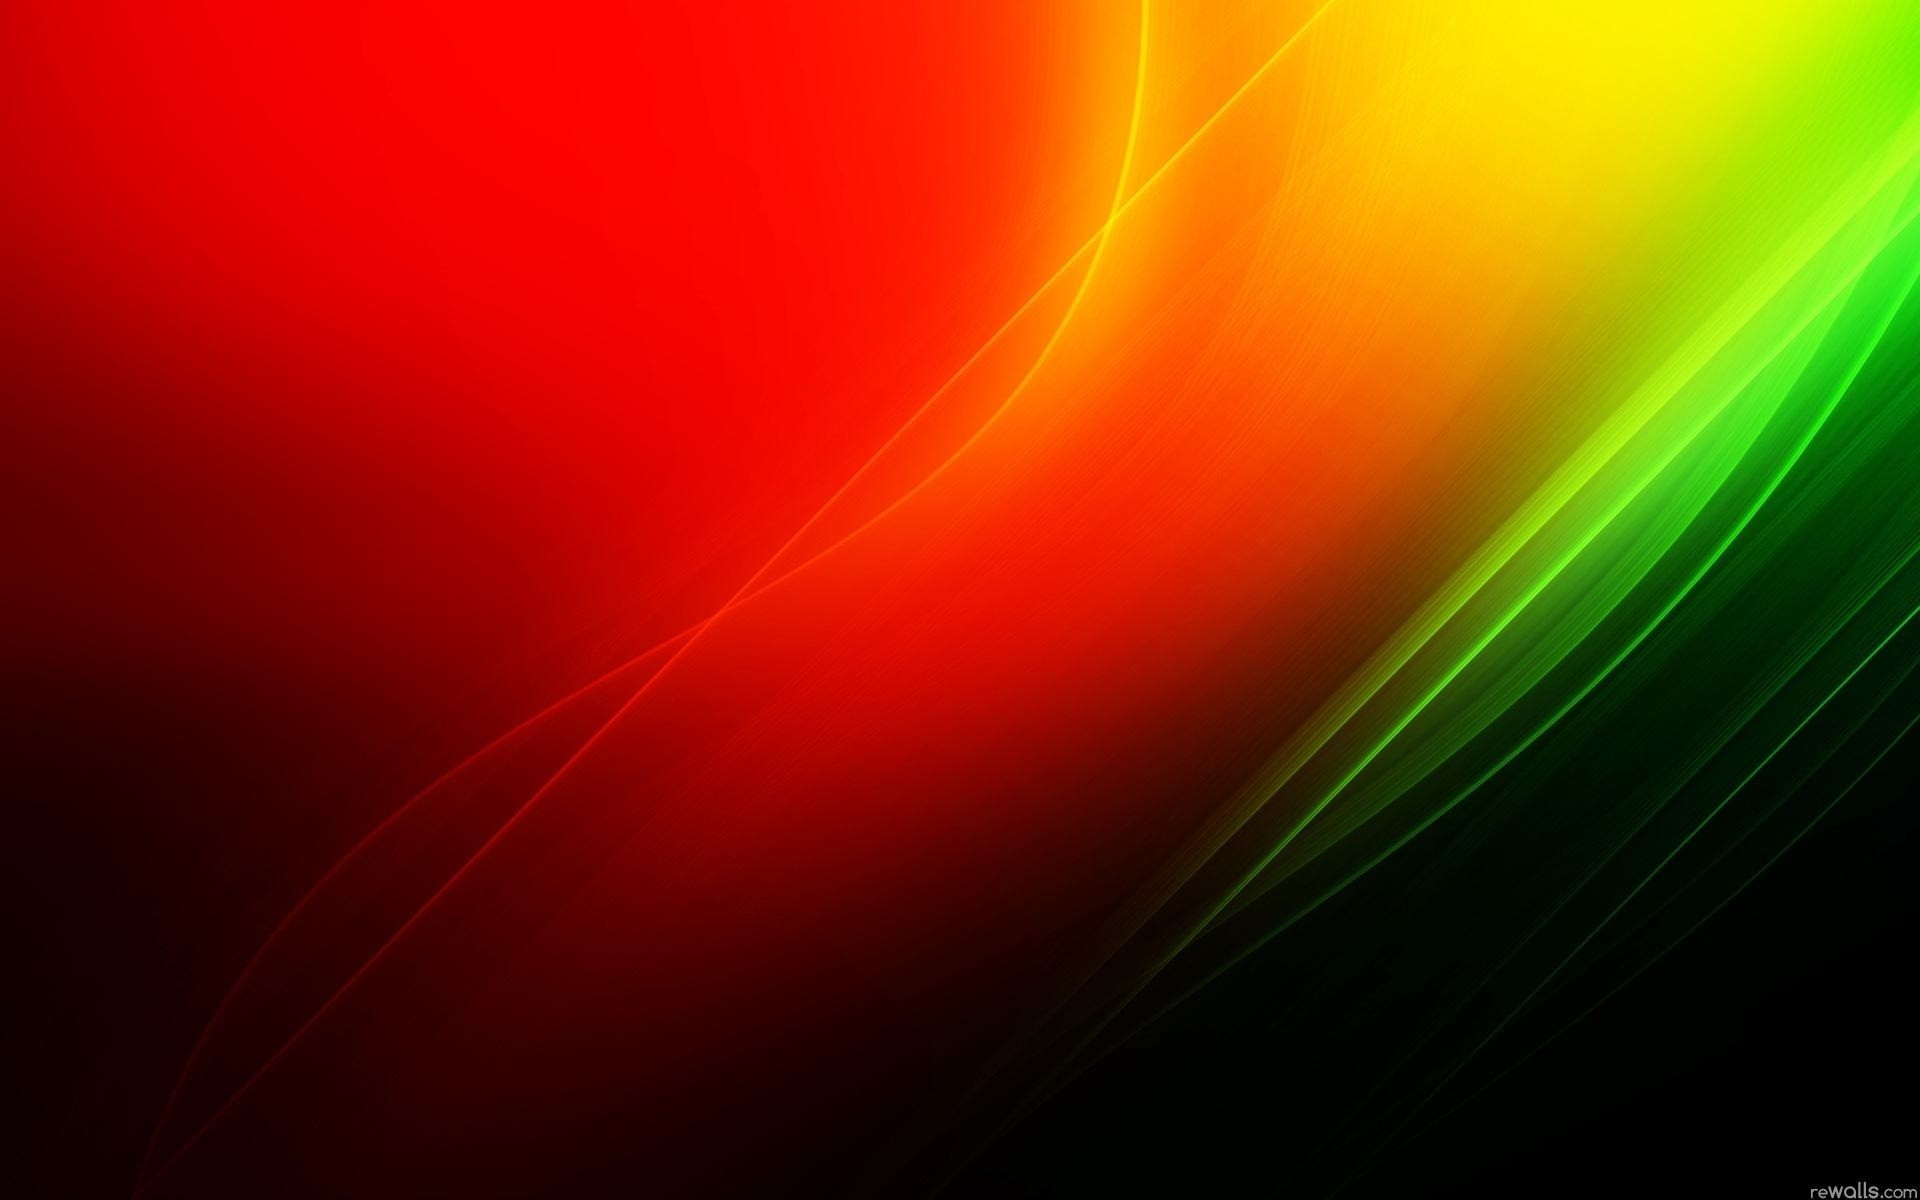 1920x1200 1920x1080 Black Background Cover. UPLOAD. TAGS: Geometry Red Abstract .